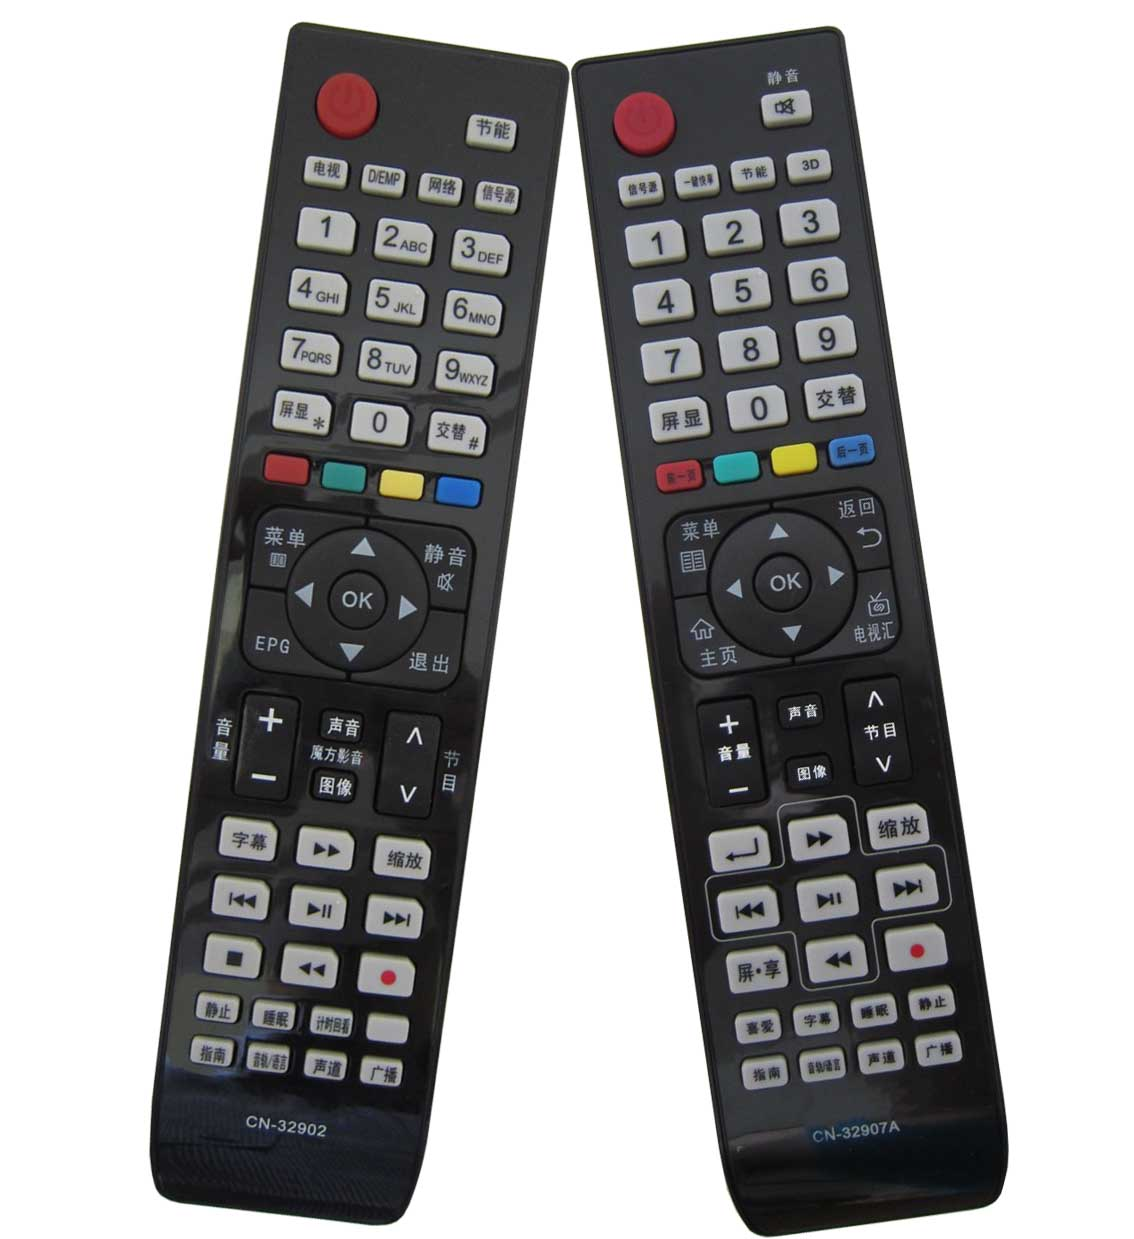 Hisense 3d lcd tv remote cn-32907a led47k560nx3d